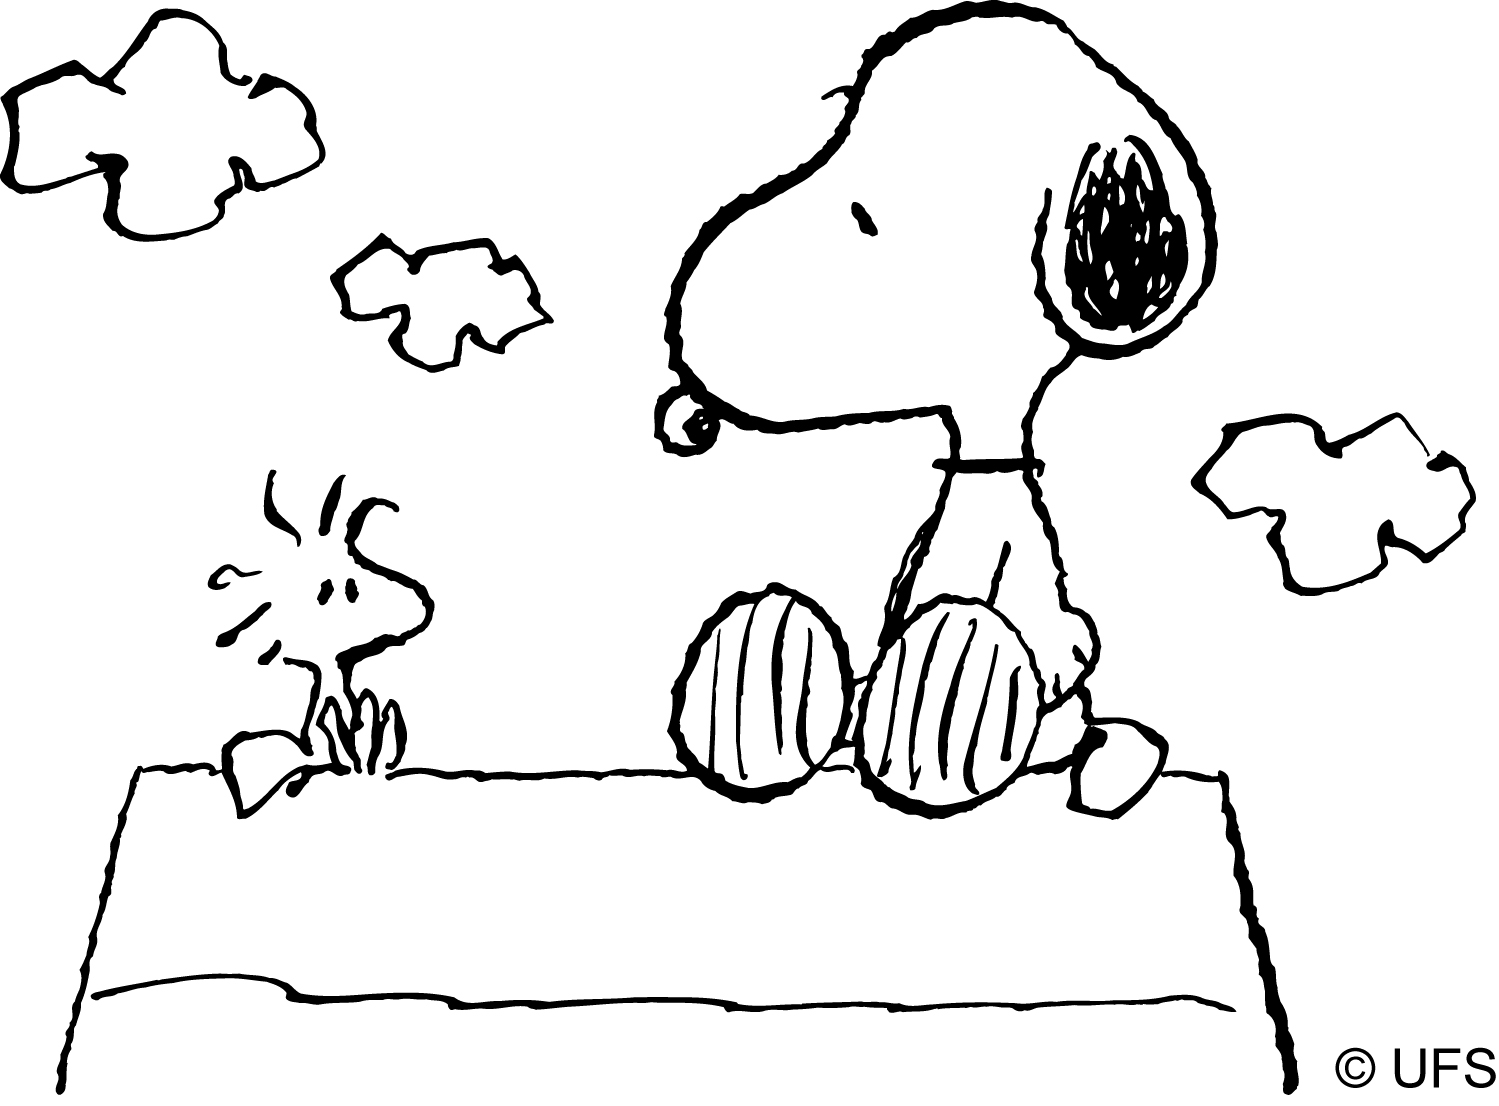 snoopy woodstock christmas coloring pages - photo#13